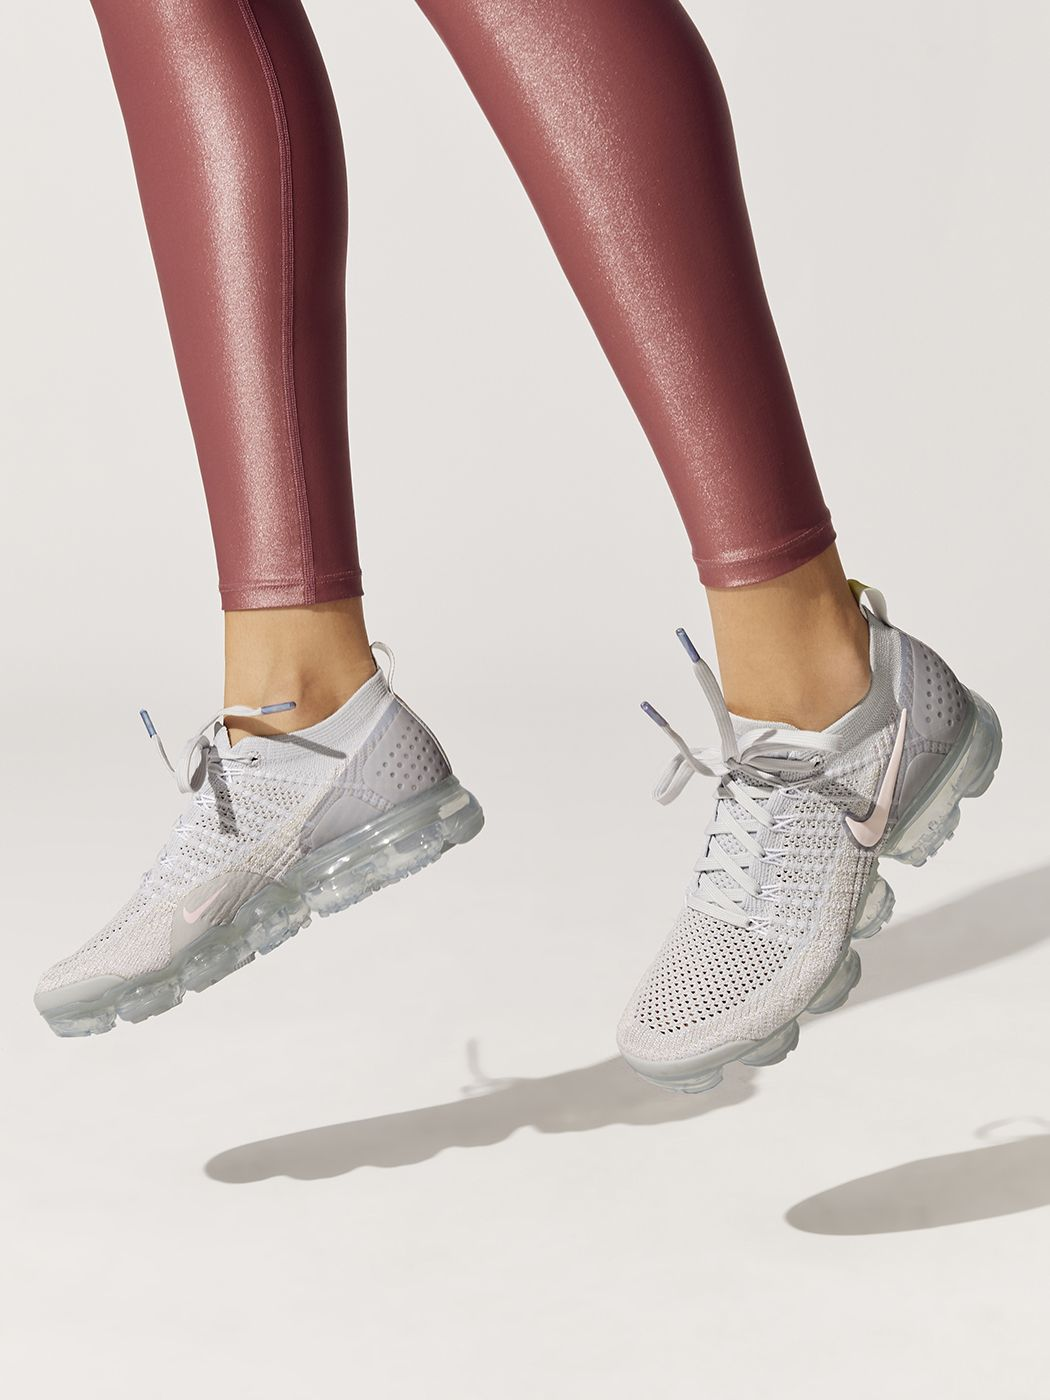 1f511d71cf97 W Nike Air Vapormax Flyknit 2 in Pure Platinum arctic Pink-white-pure  Platinum by Nike from Carbon38